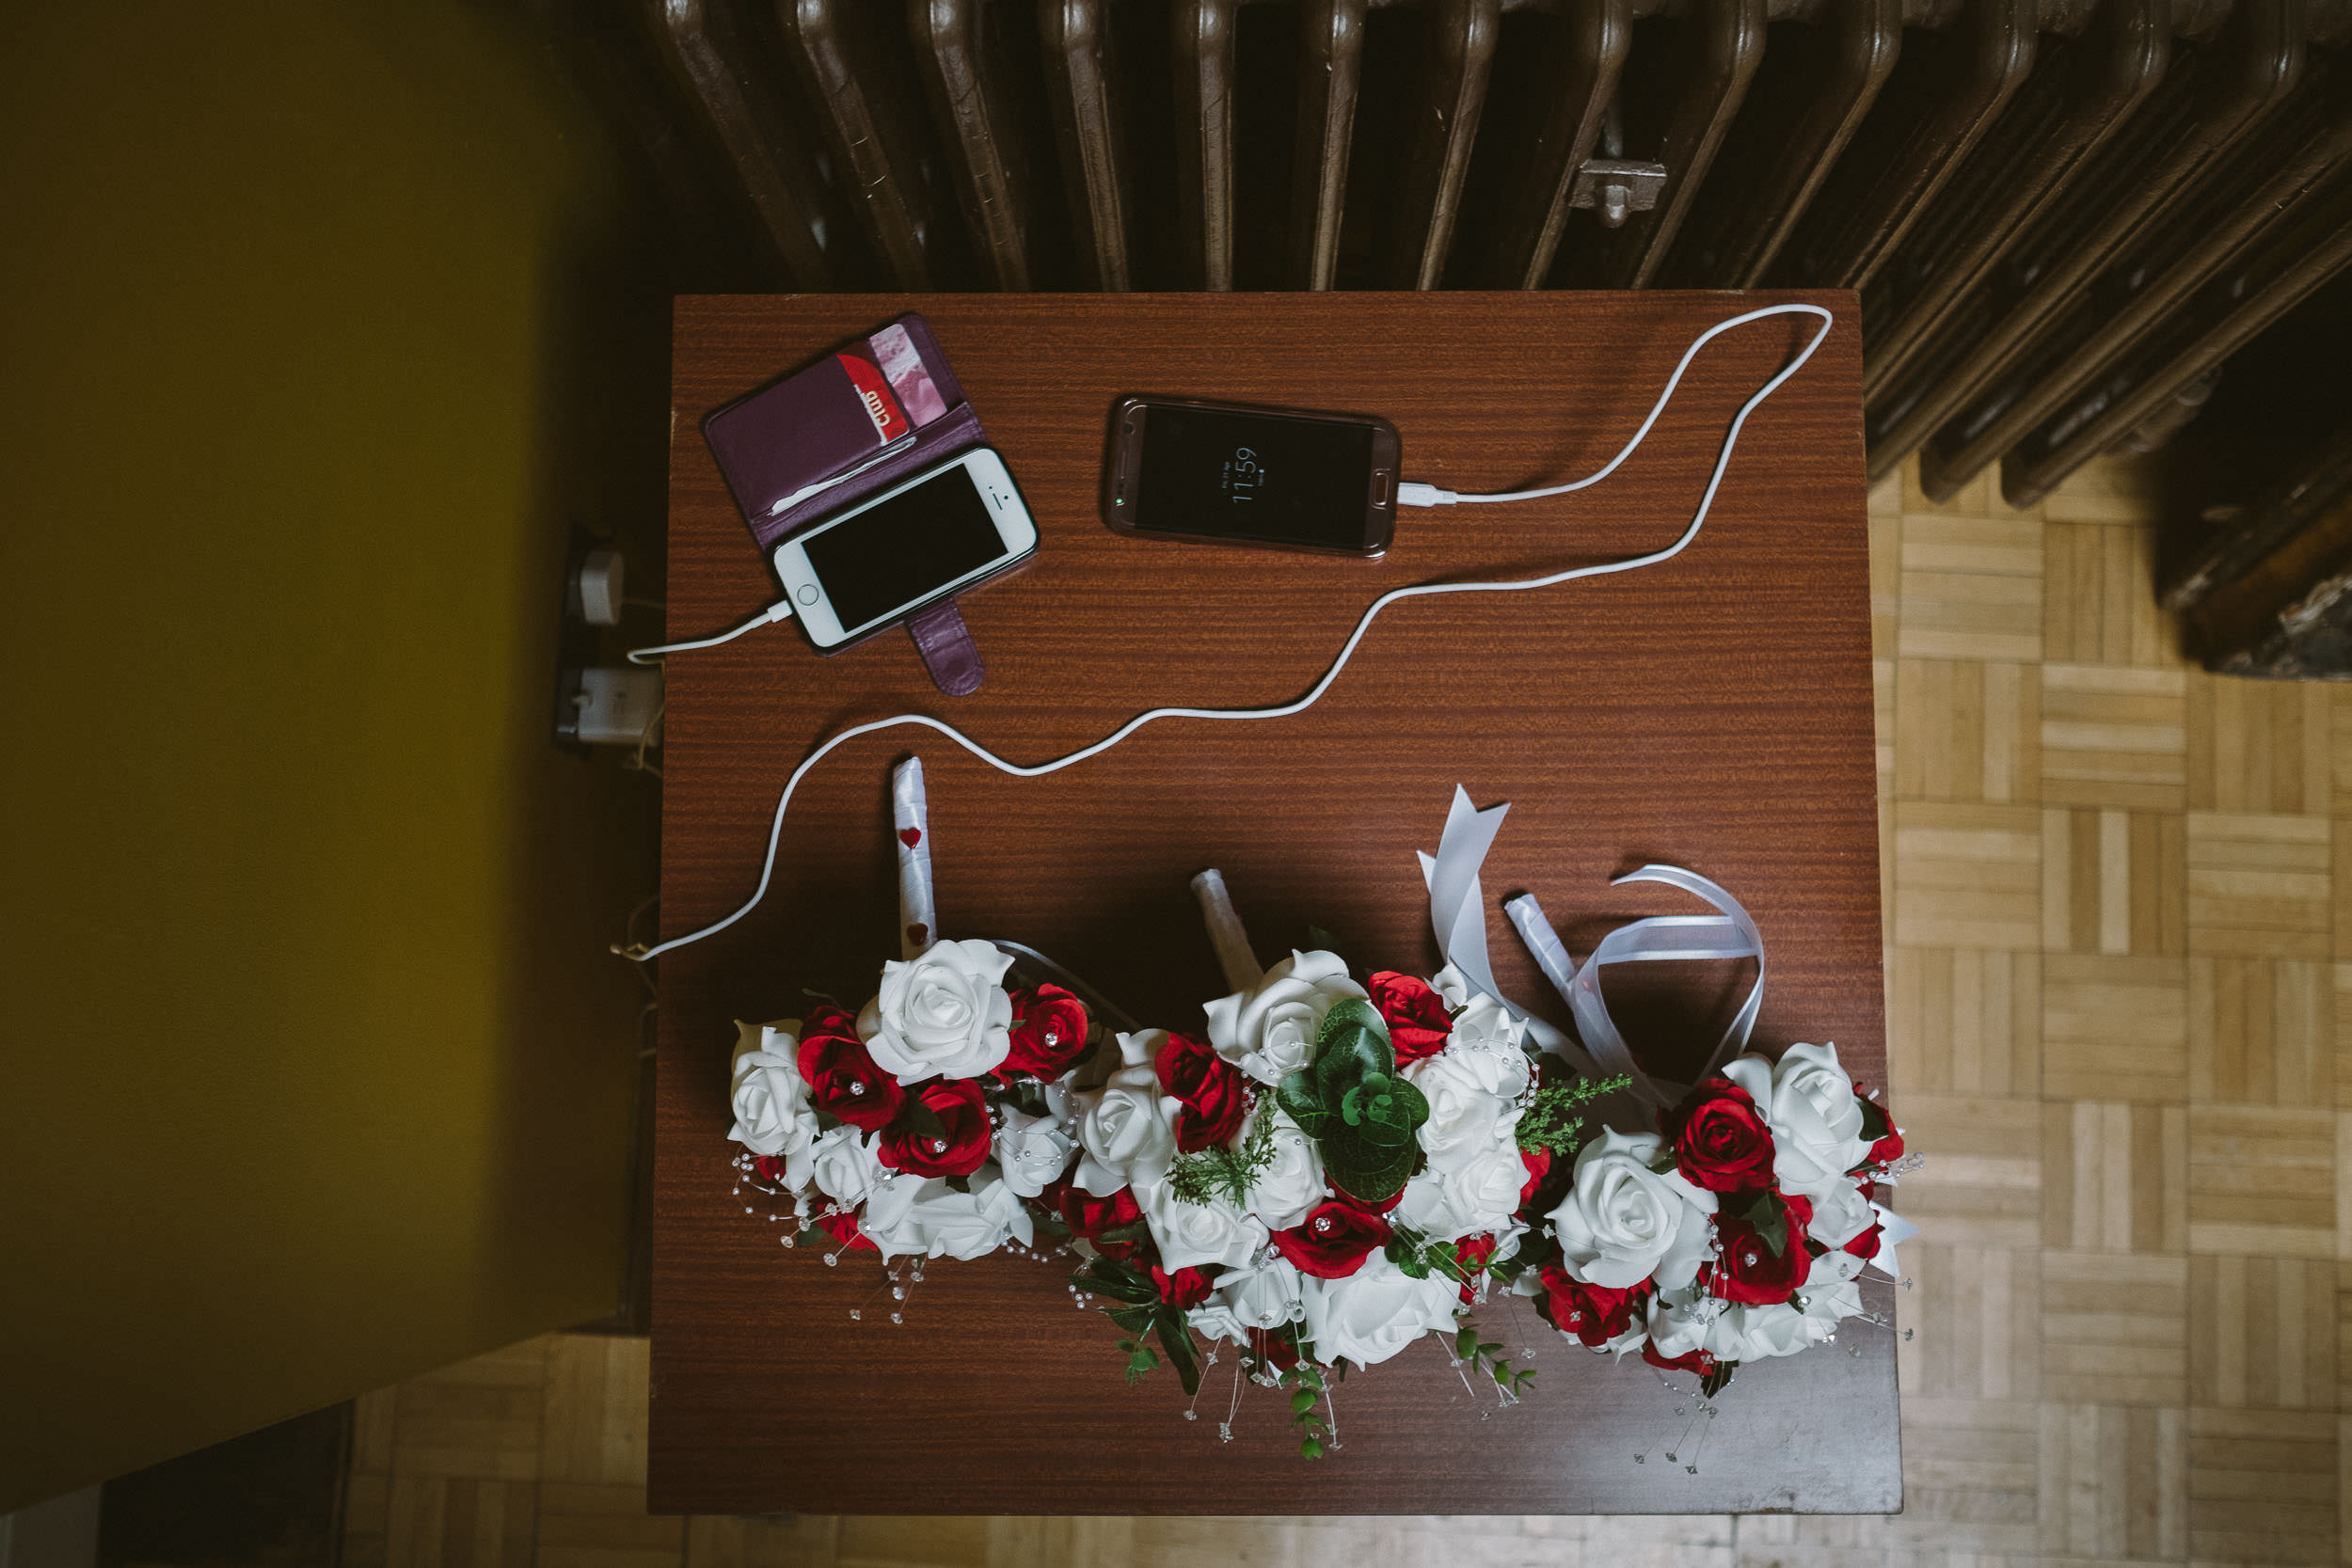 Wedding flowers lying on a table while telephones are charging